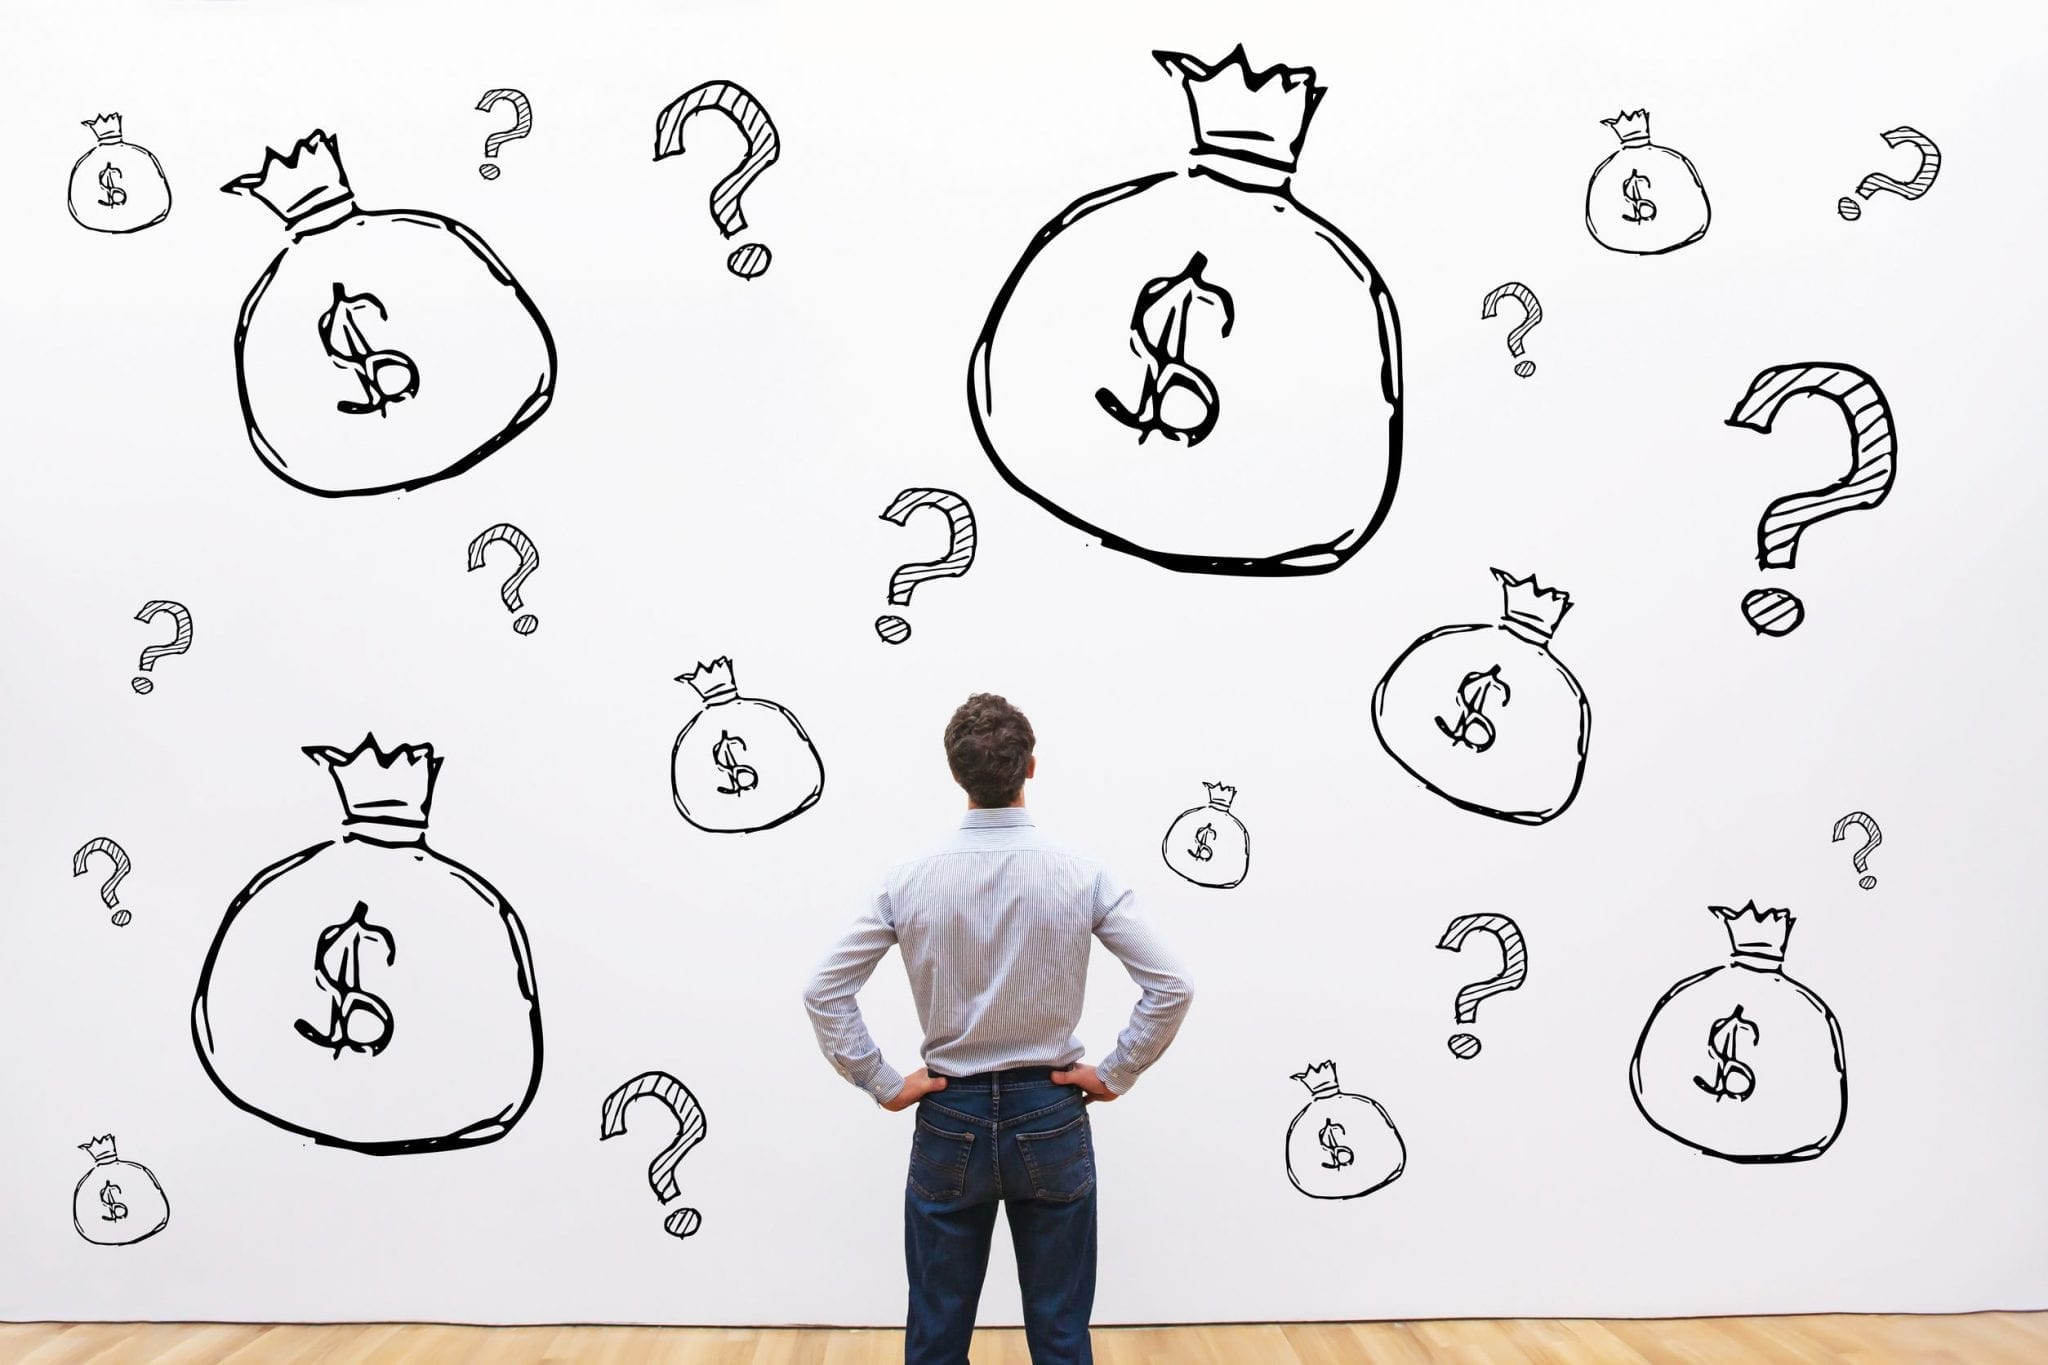 Want Investors for Your Startup? Here are 11 Ways to Get Them.